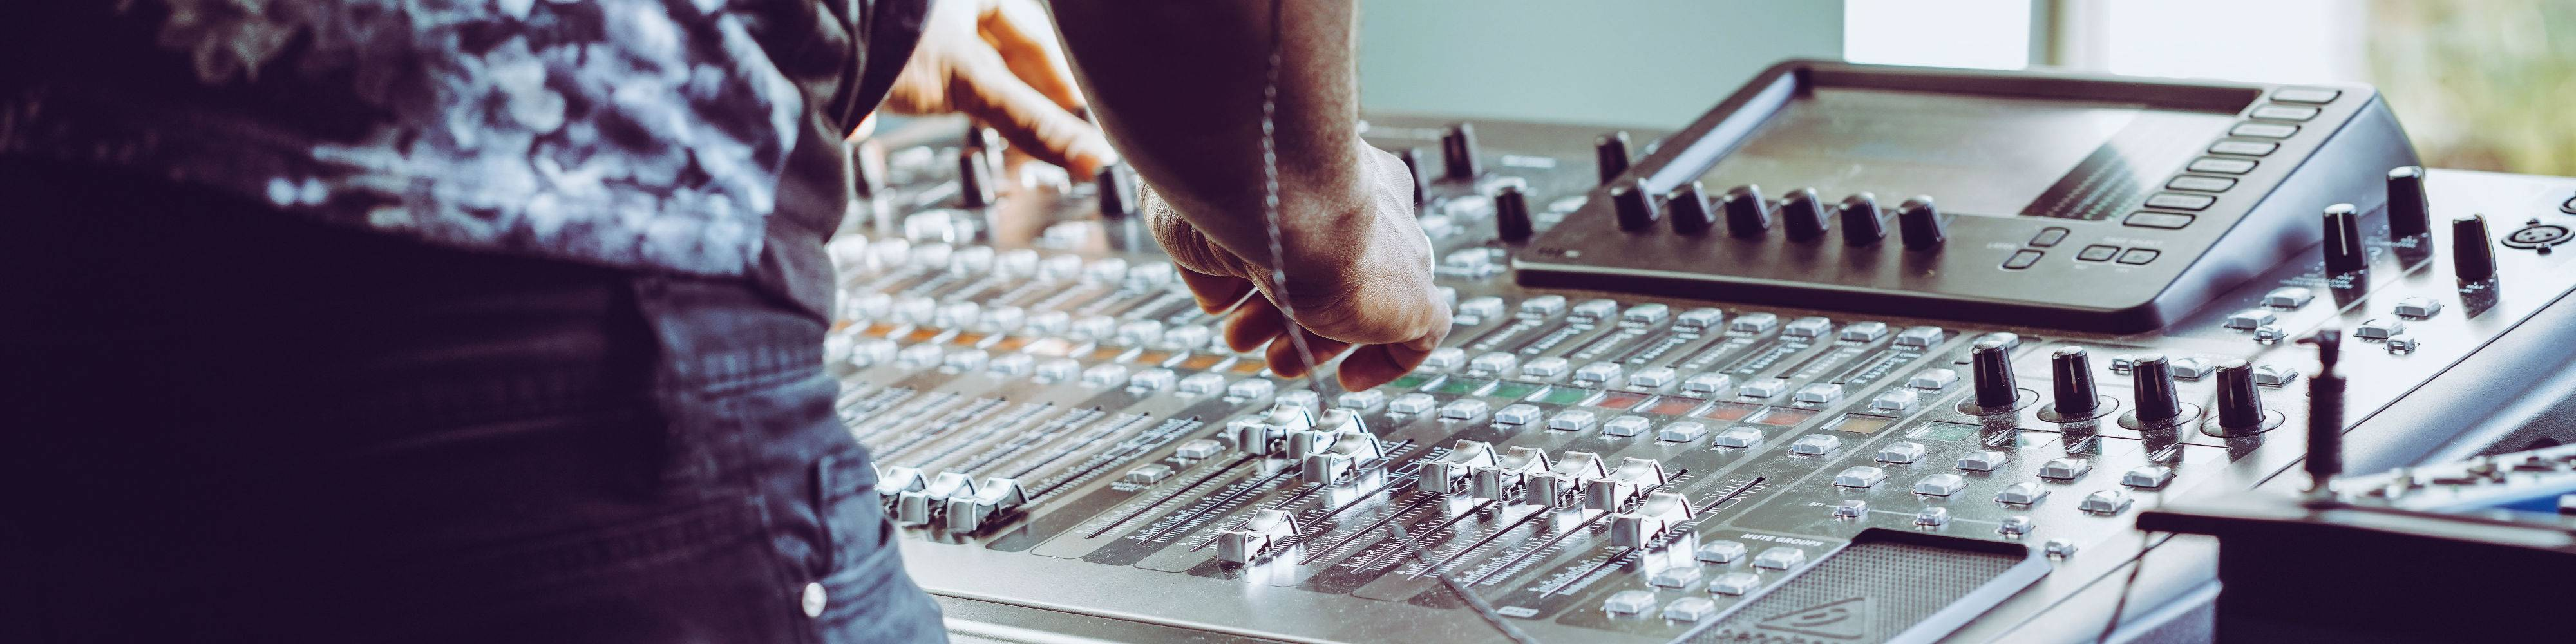 An engineer mixing on a desk